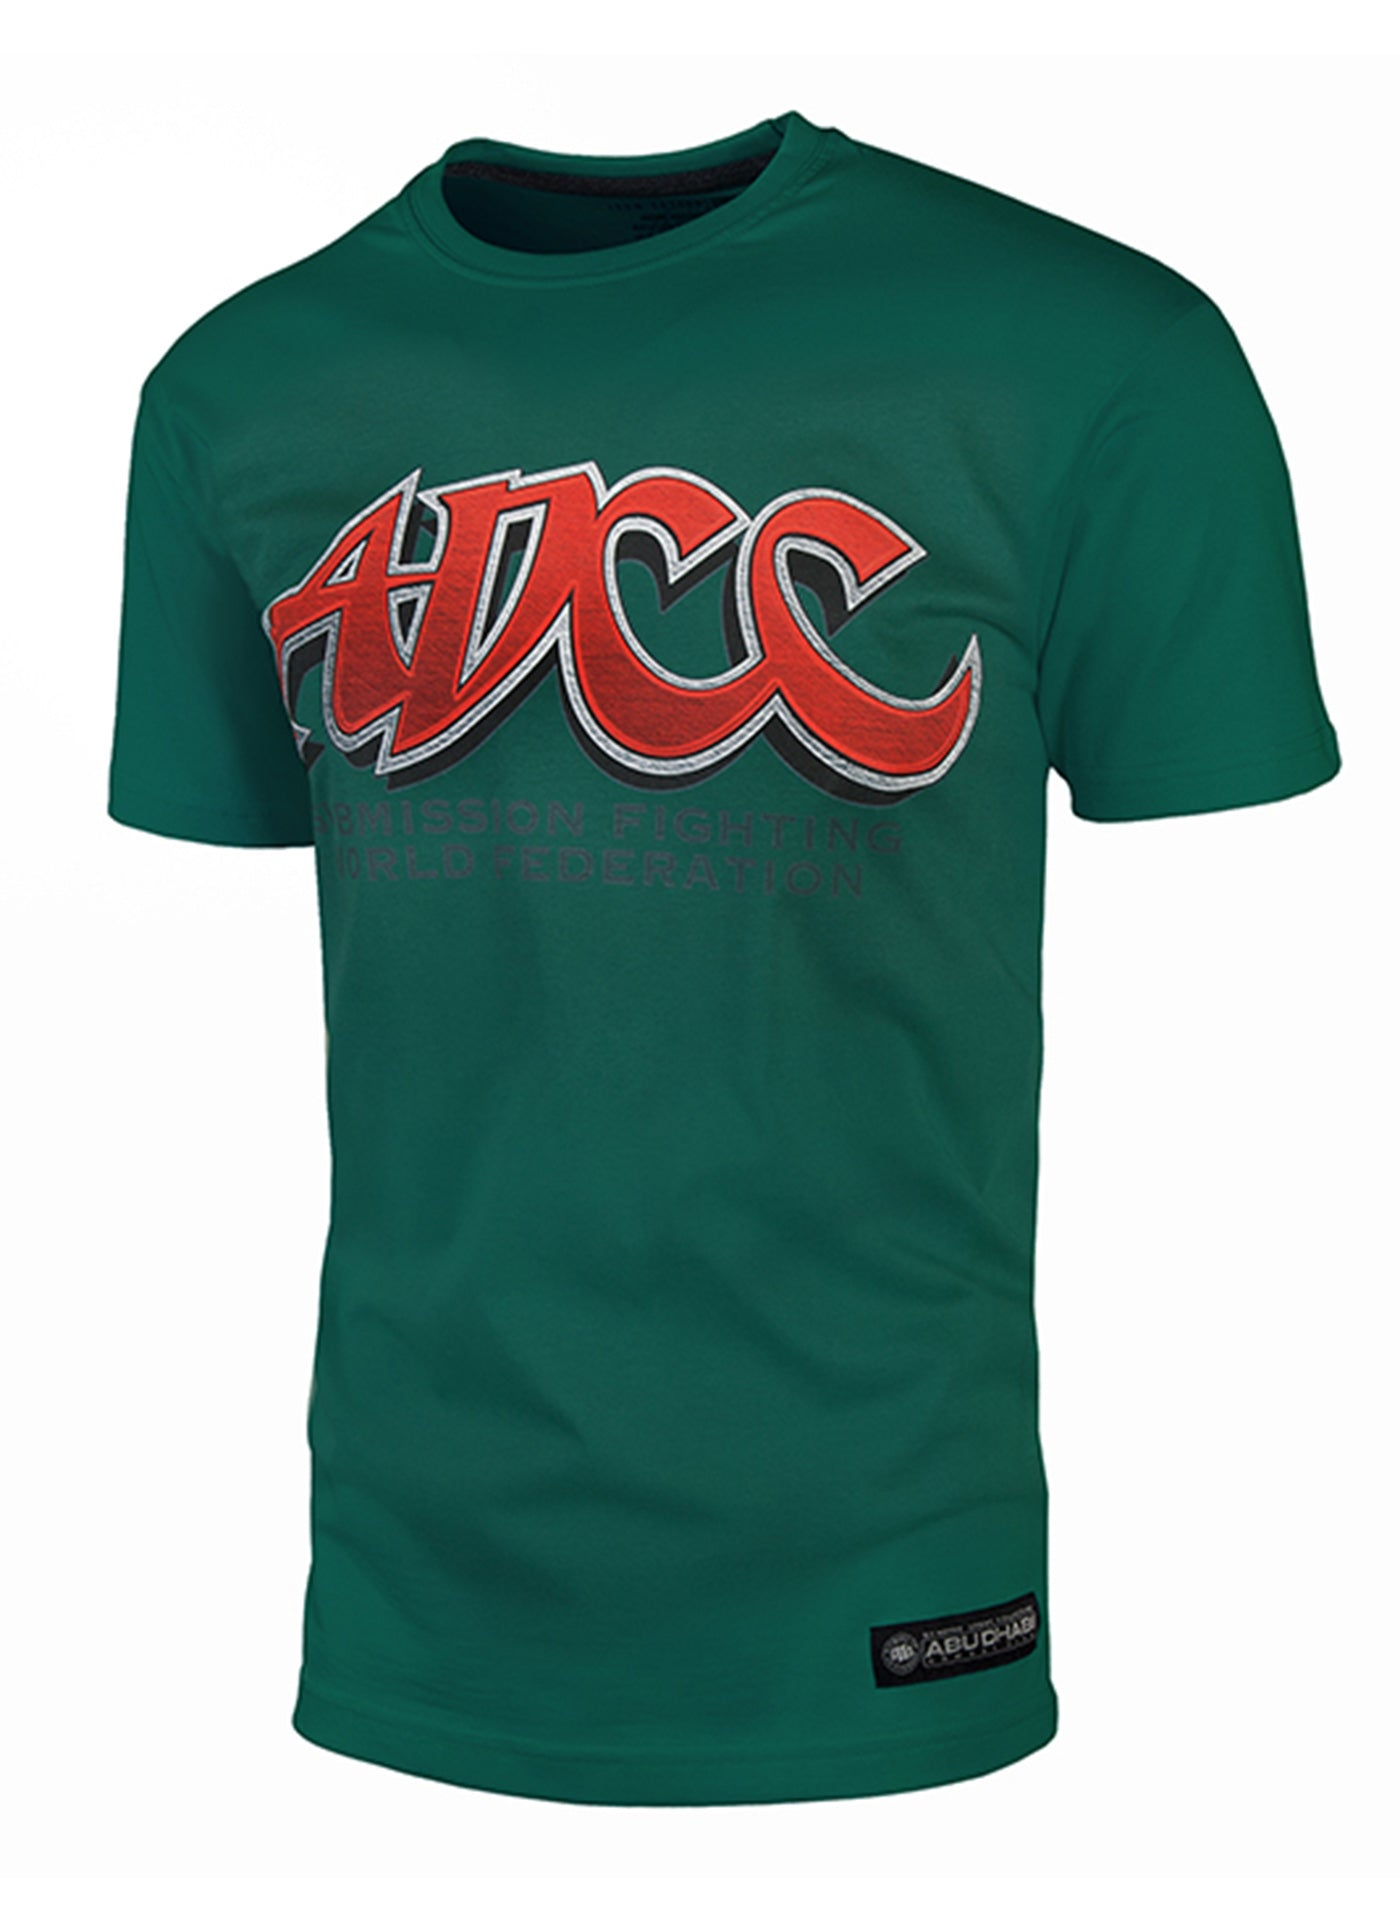 Official ADCC T-Shirt Green - Pitbull West Coast U.S.A.